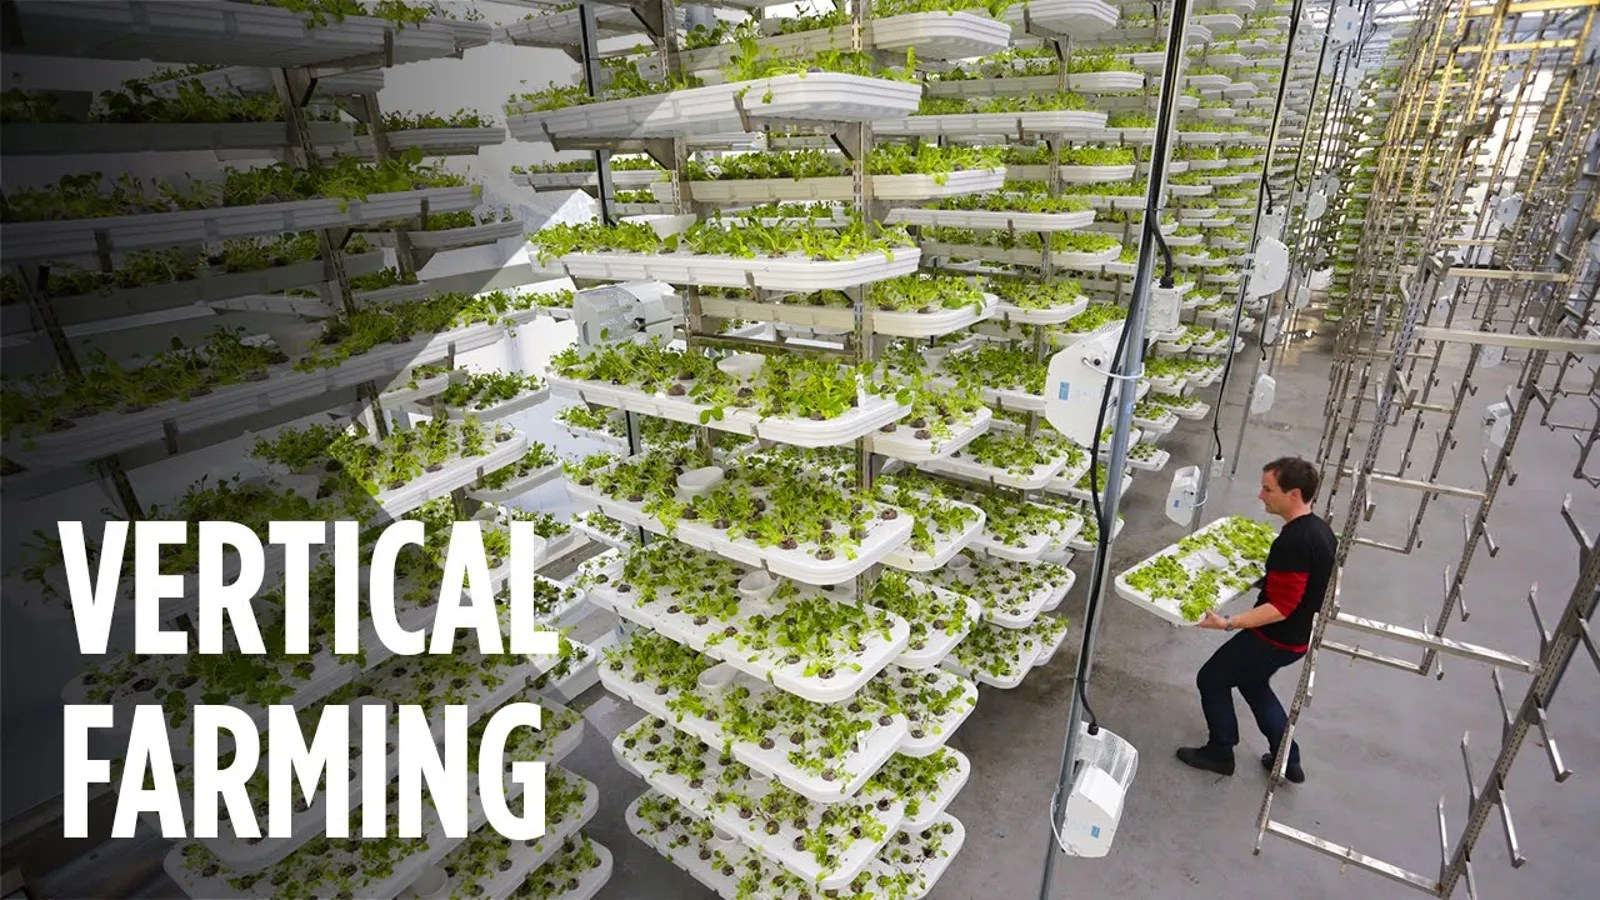 The Worlds Largest Vertical Farm Is Being Built In New Jersey